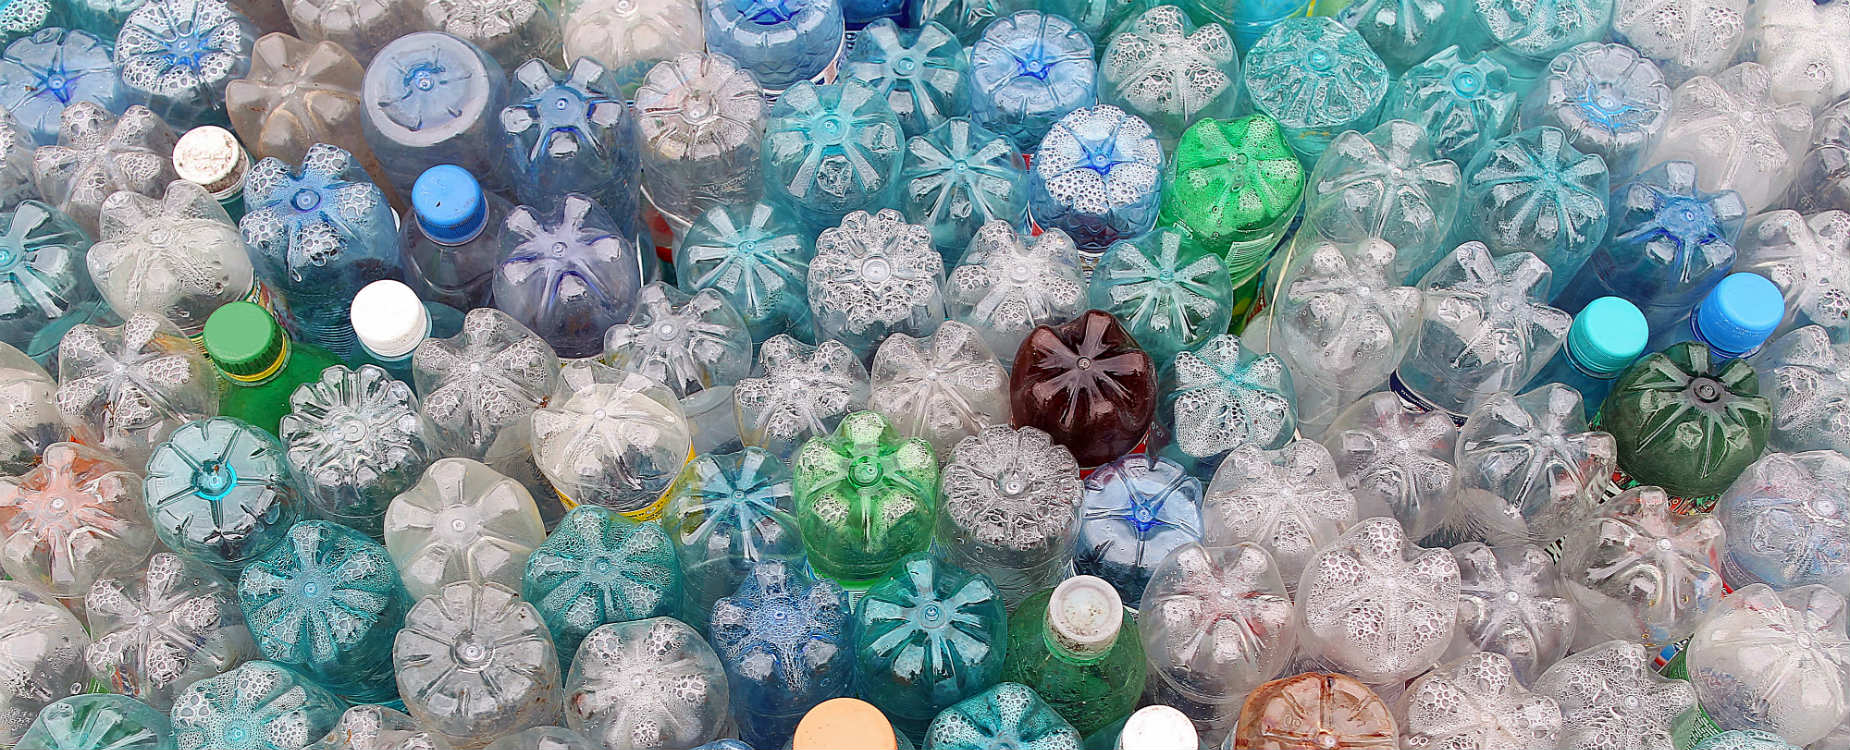 An assortment of plastic bottles packed together upside down.